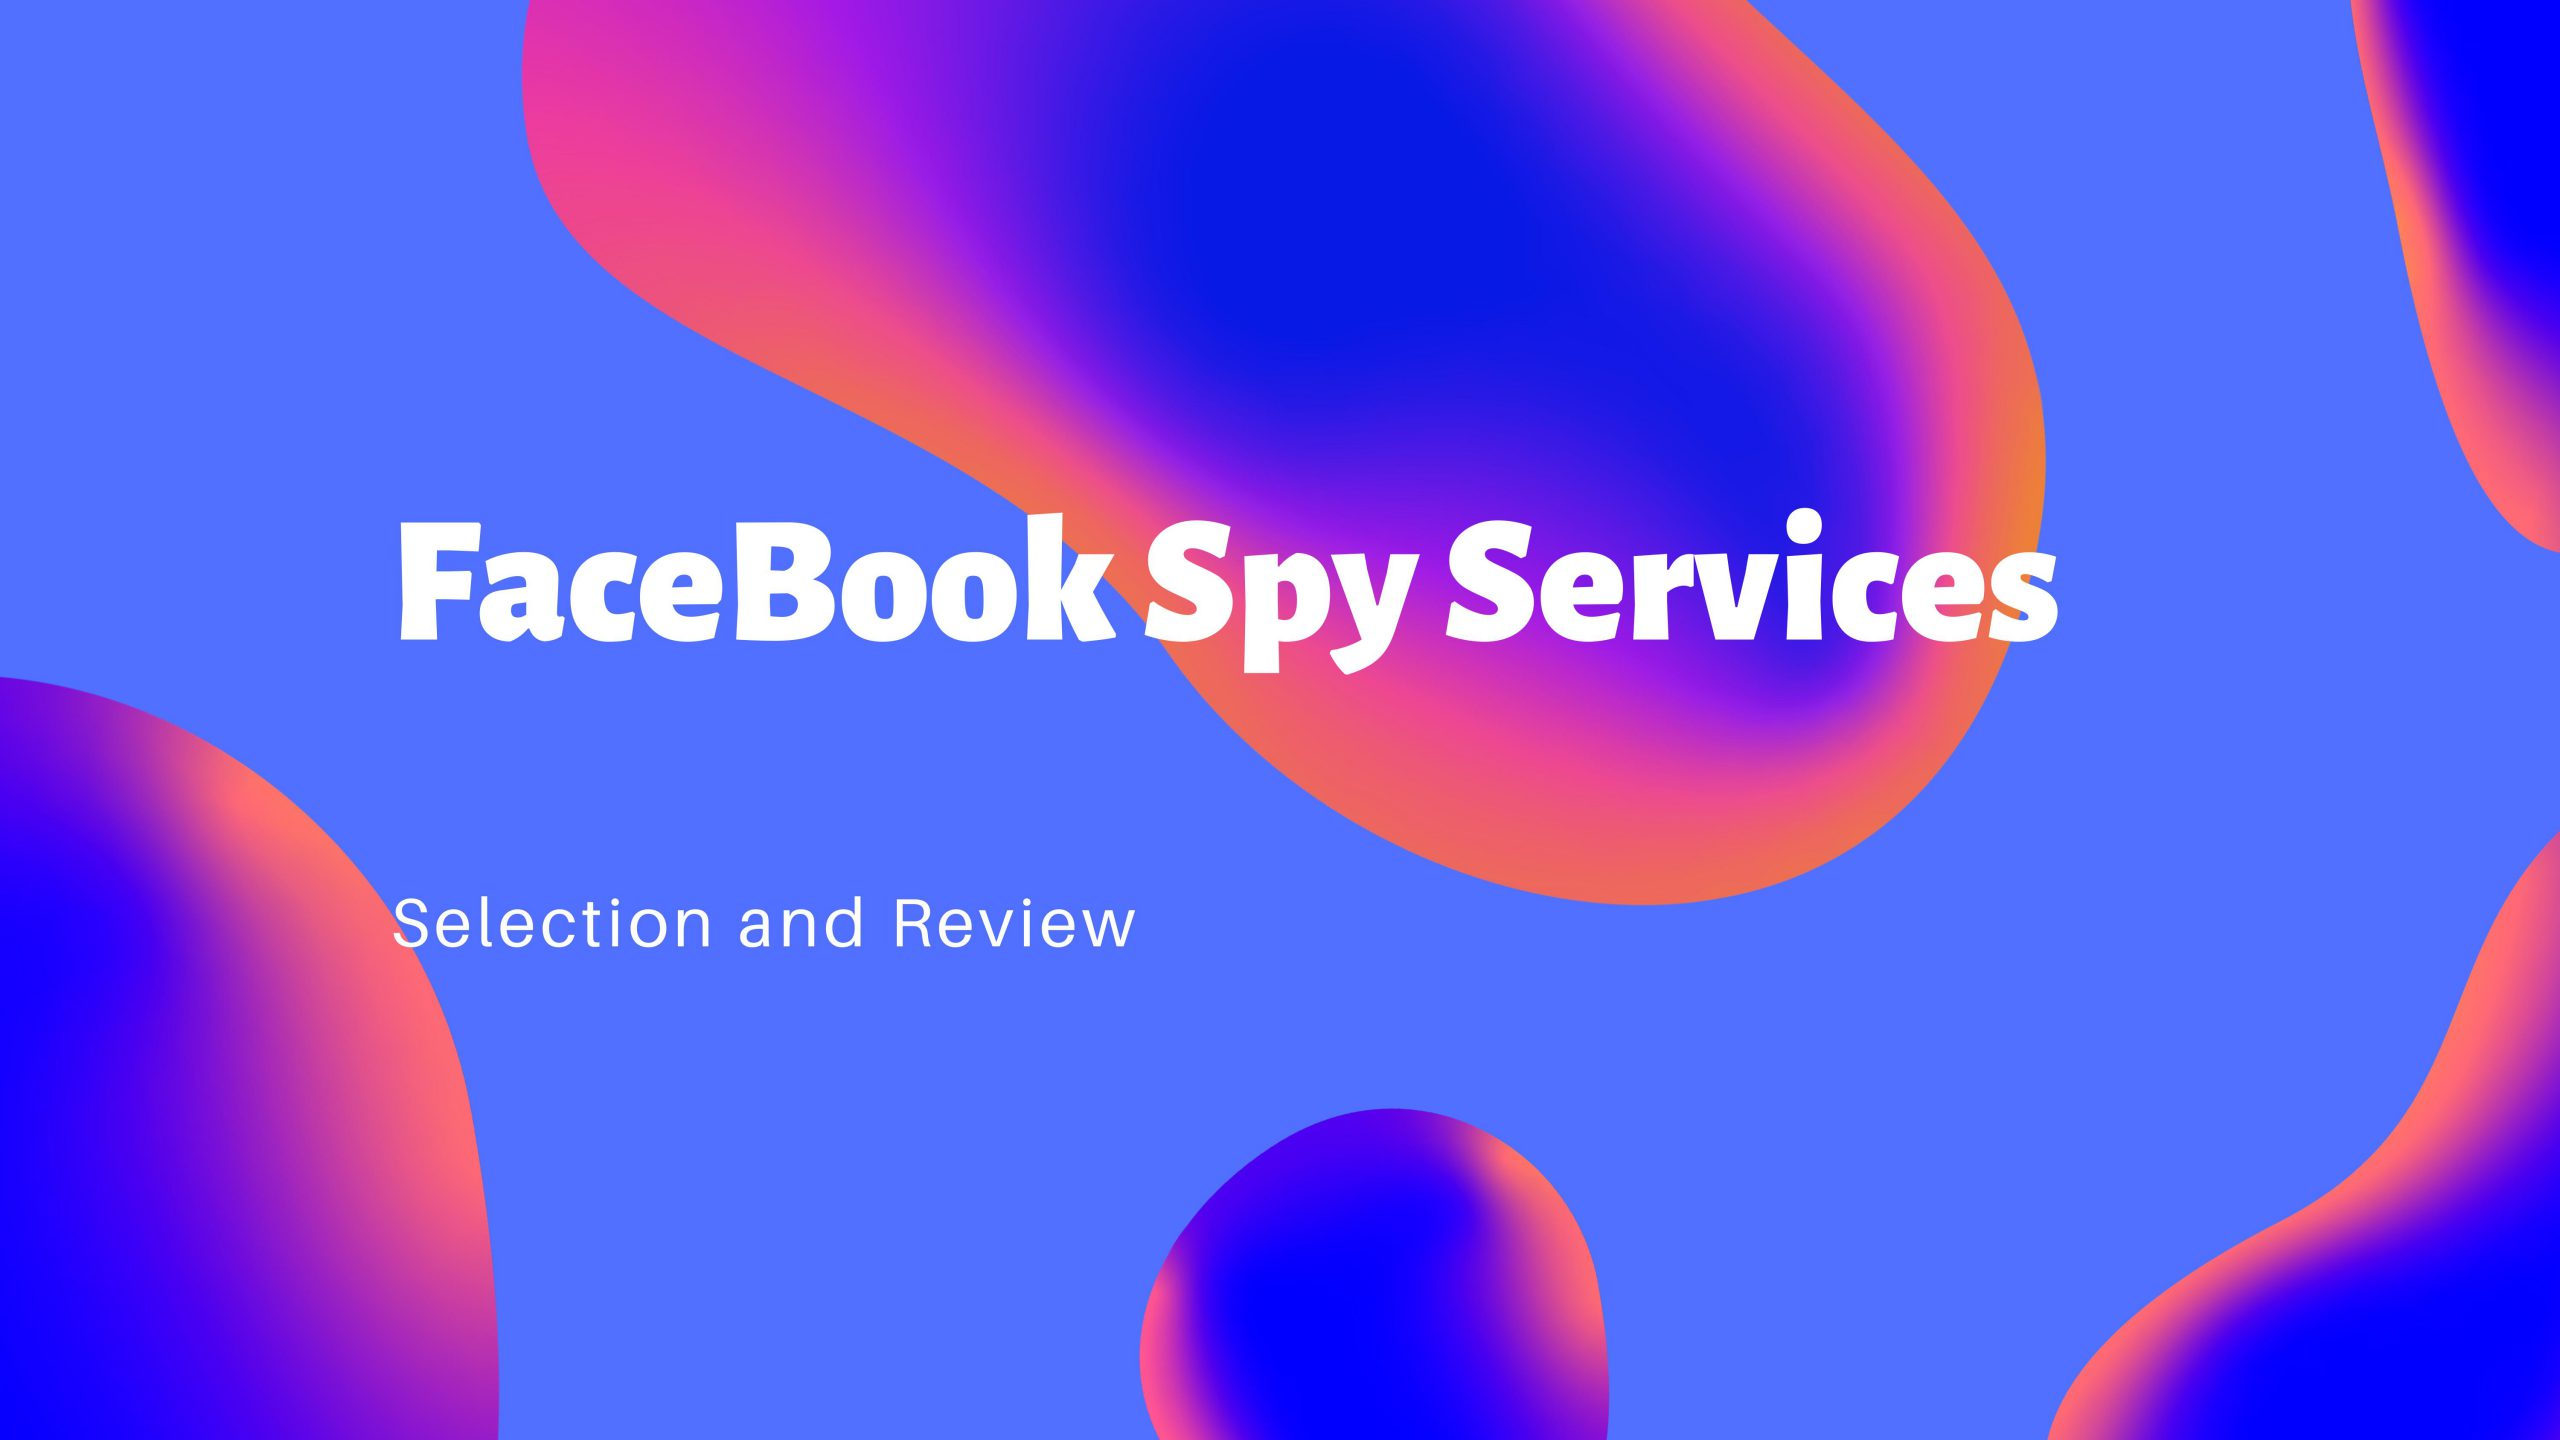 FaceBook Spy Services Selection and Review